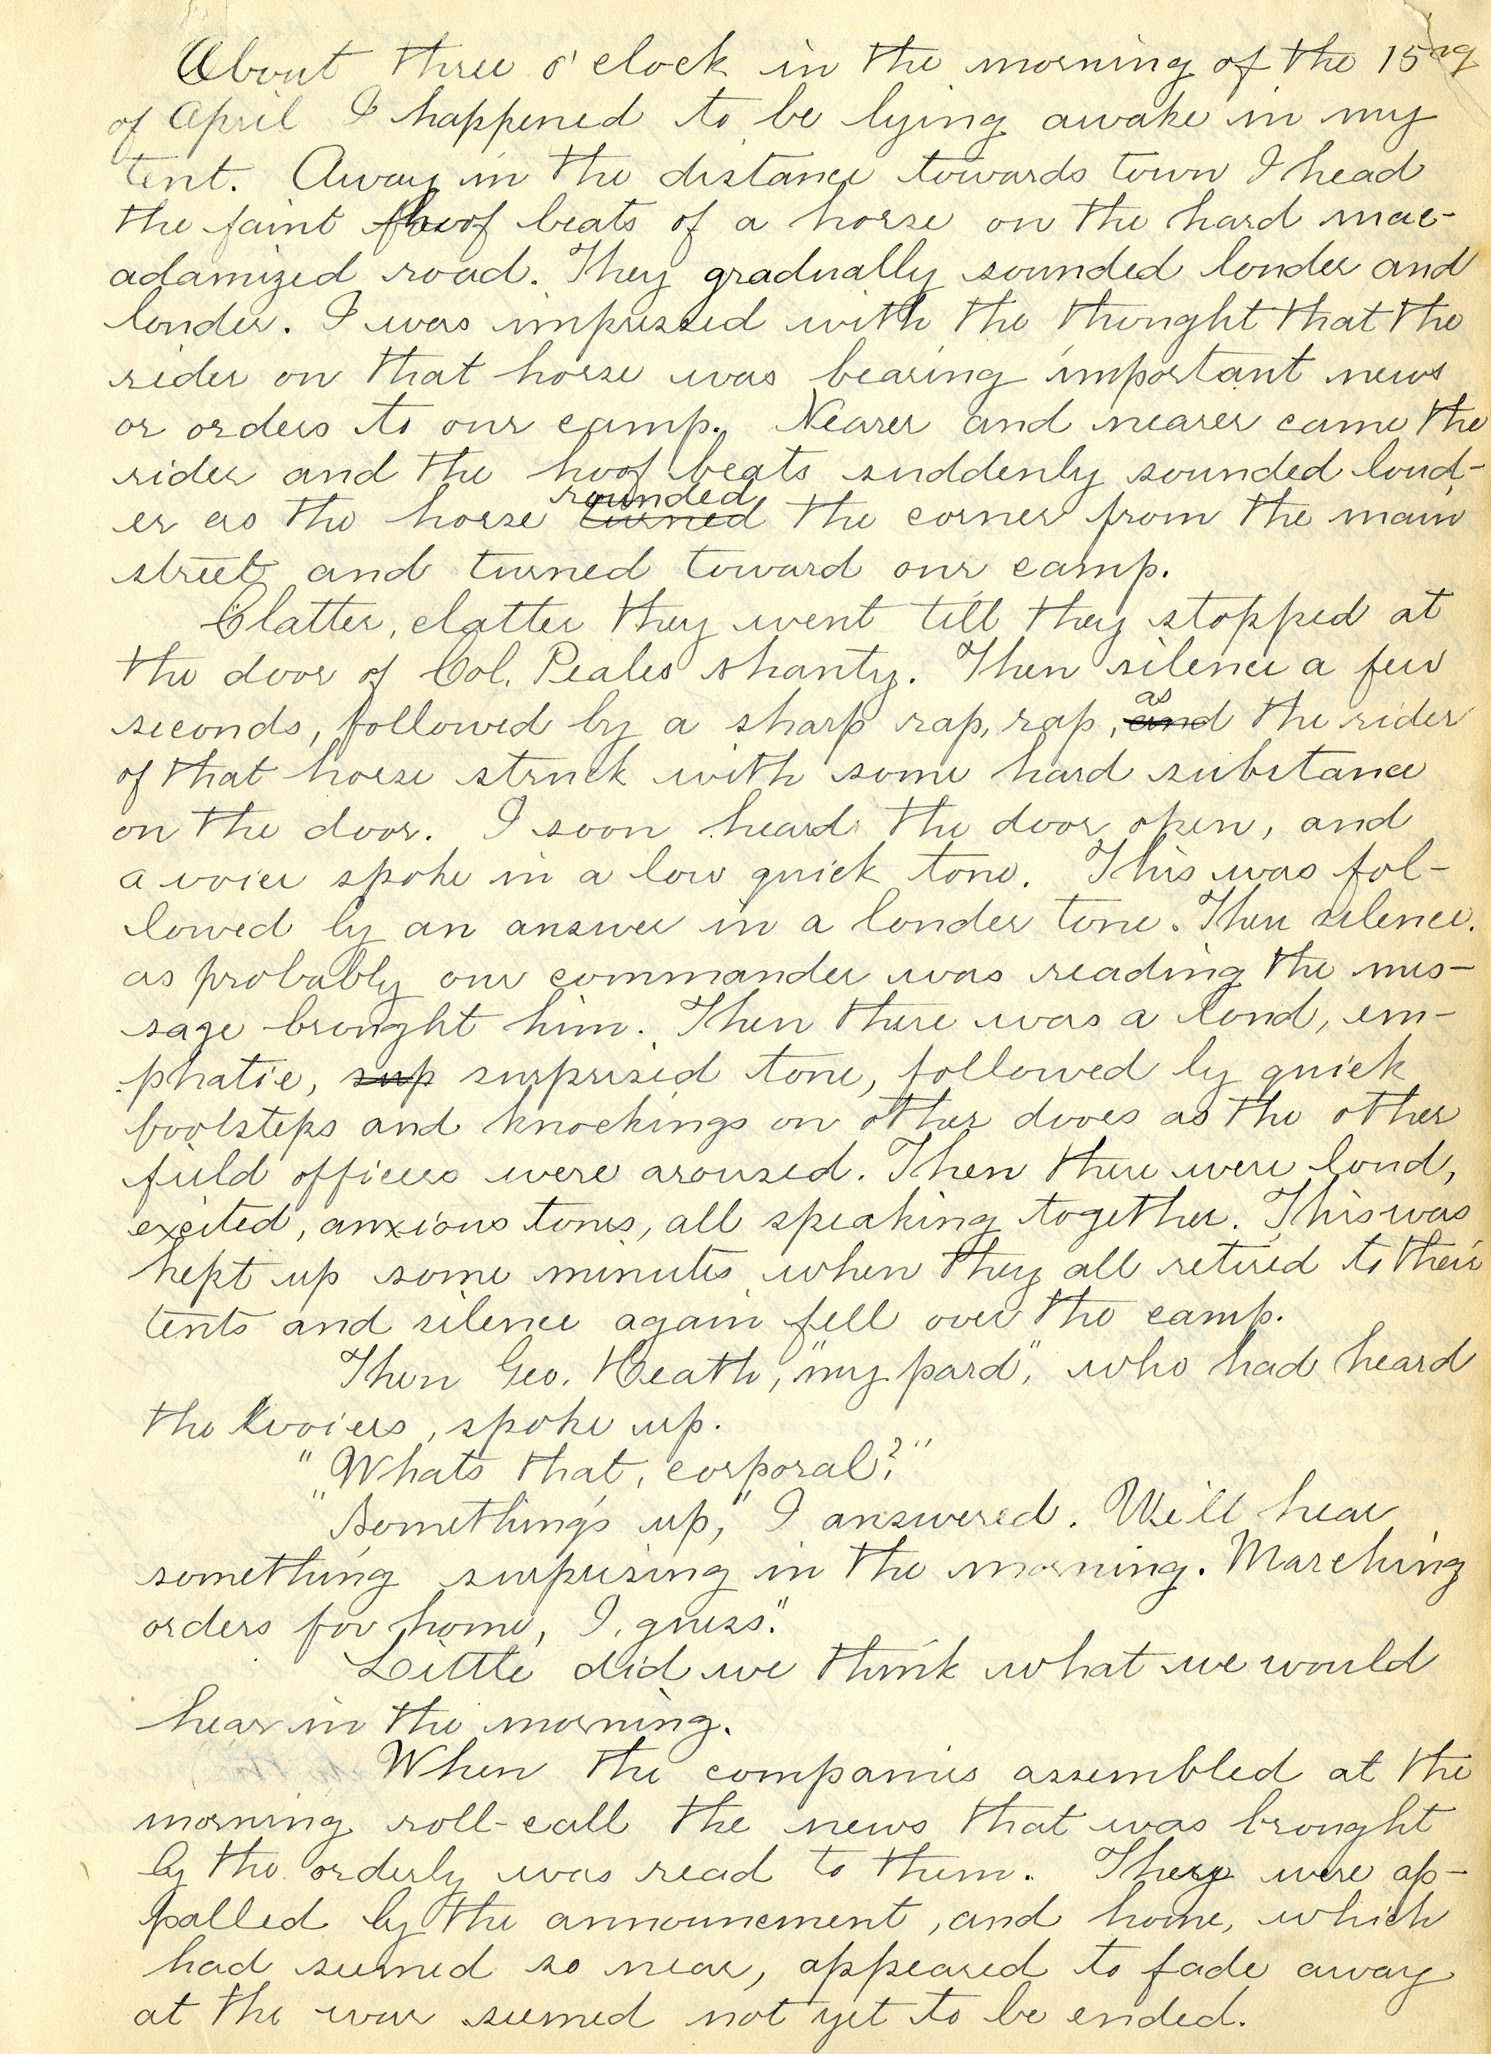 Record Book of James H. Sawyer, 1862-1865